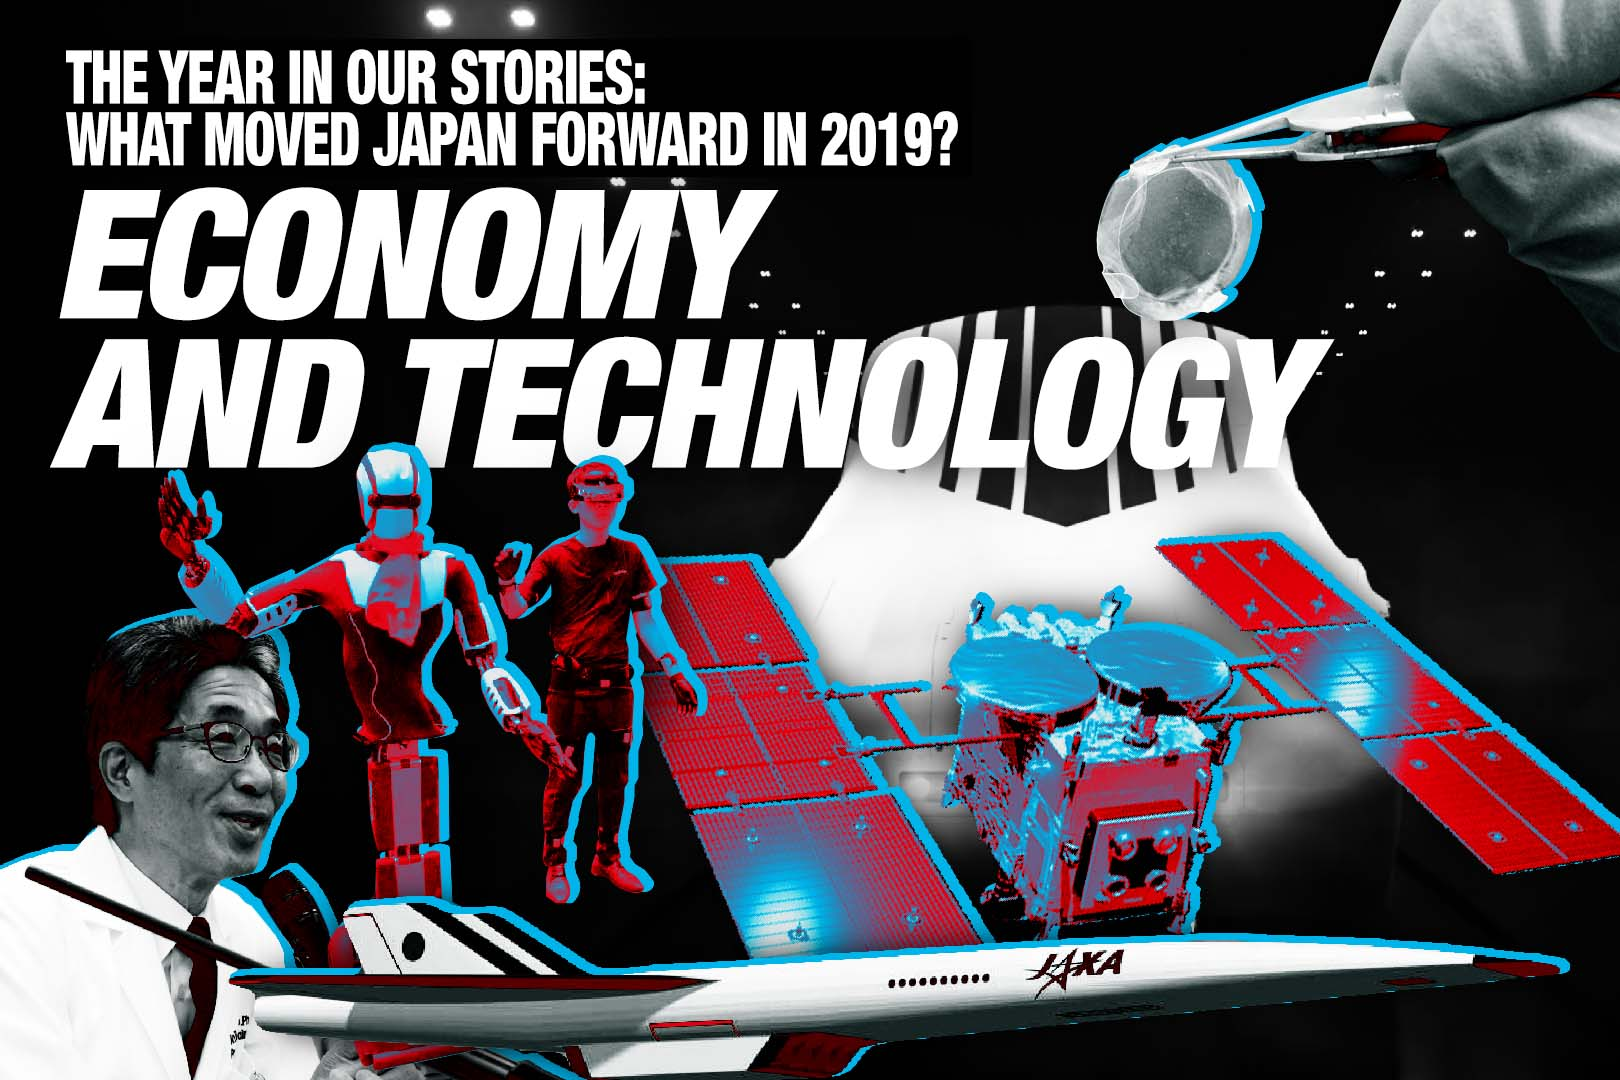 2019-the-year-in-our-stories-economy-and-technology